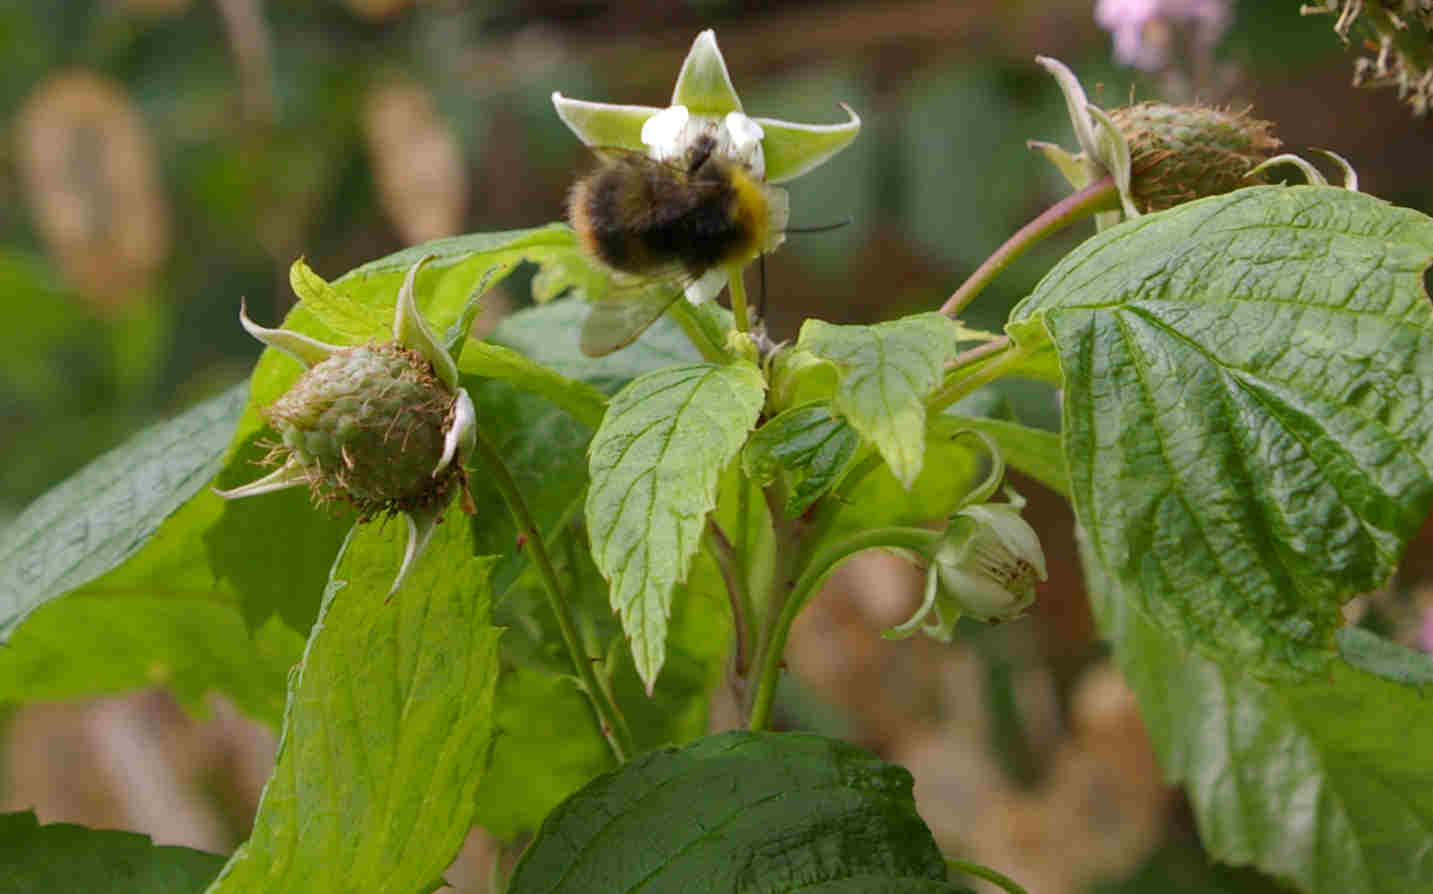 Bumble bee pollinating raspberry flowers.